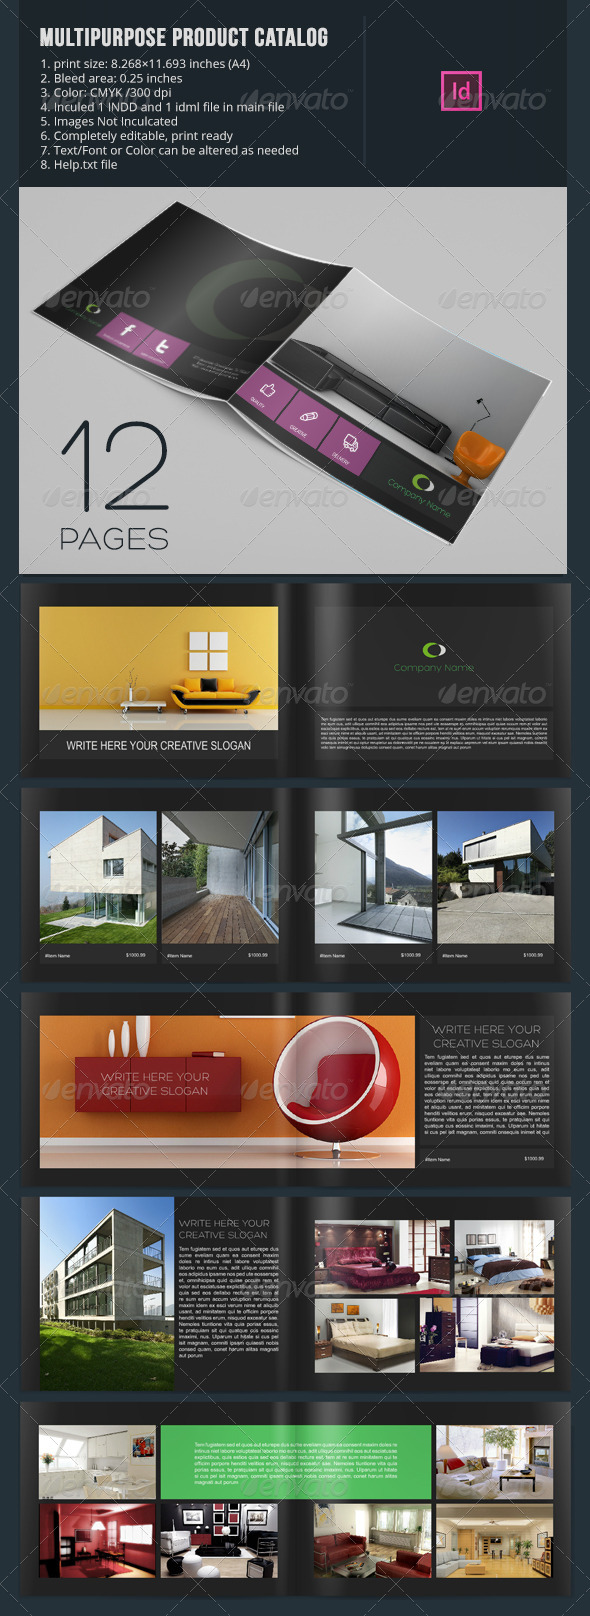 GraphicRiver Multipurpose Product Catalog 12 Pages 6586295